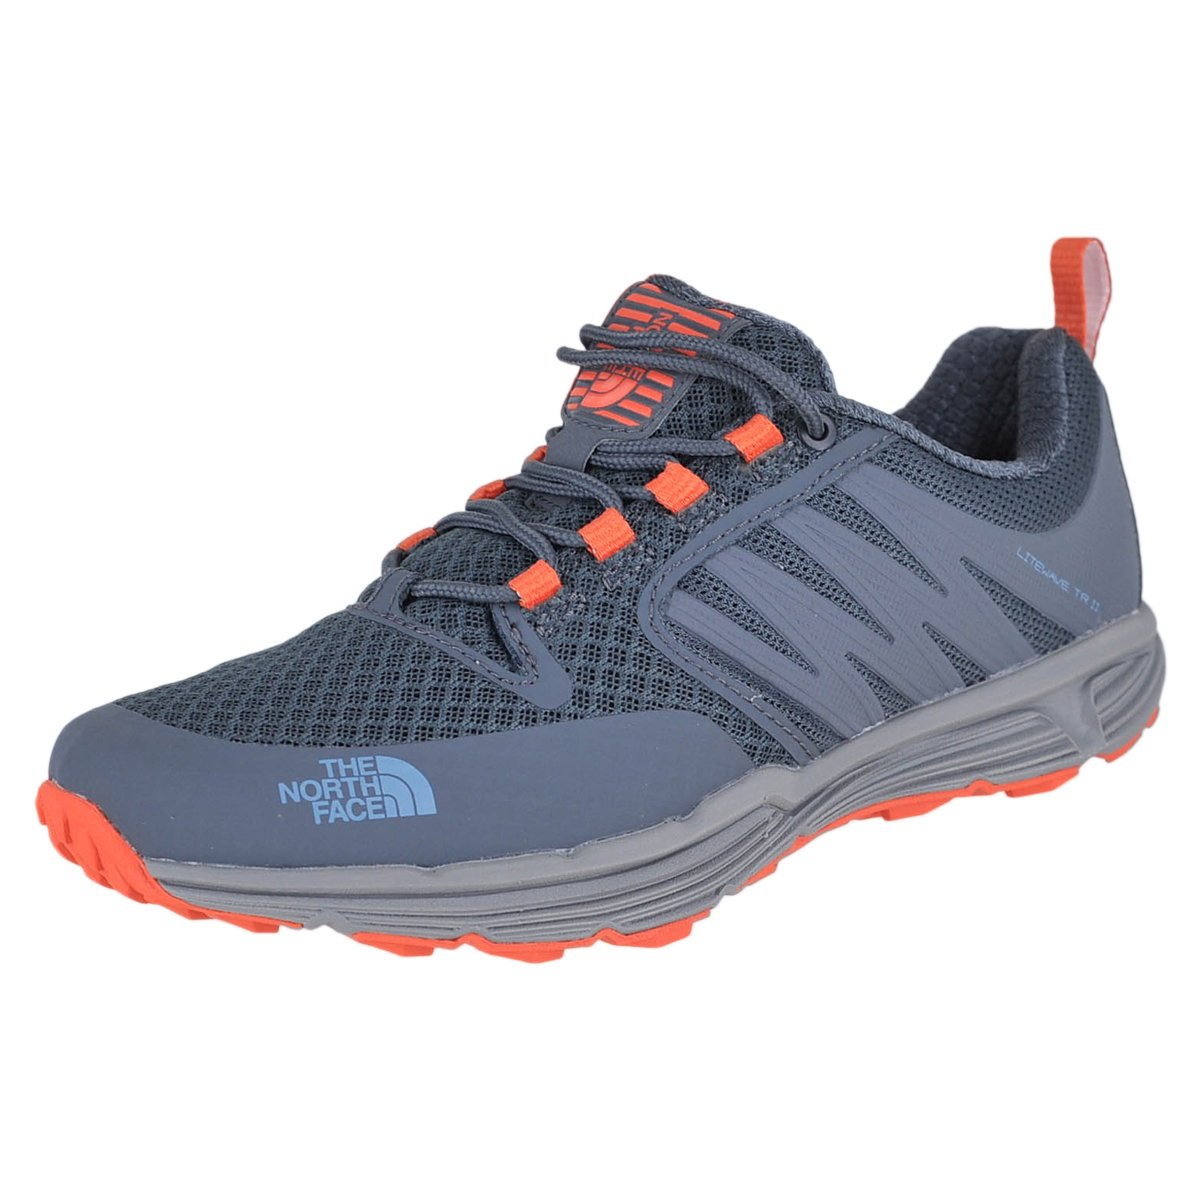 THE NORTH FACE Women's Litewave Tr Ii